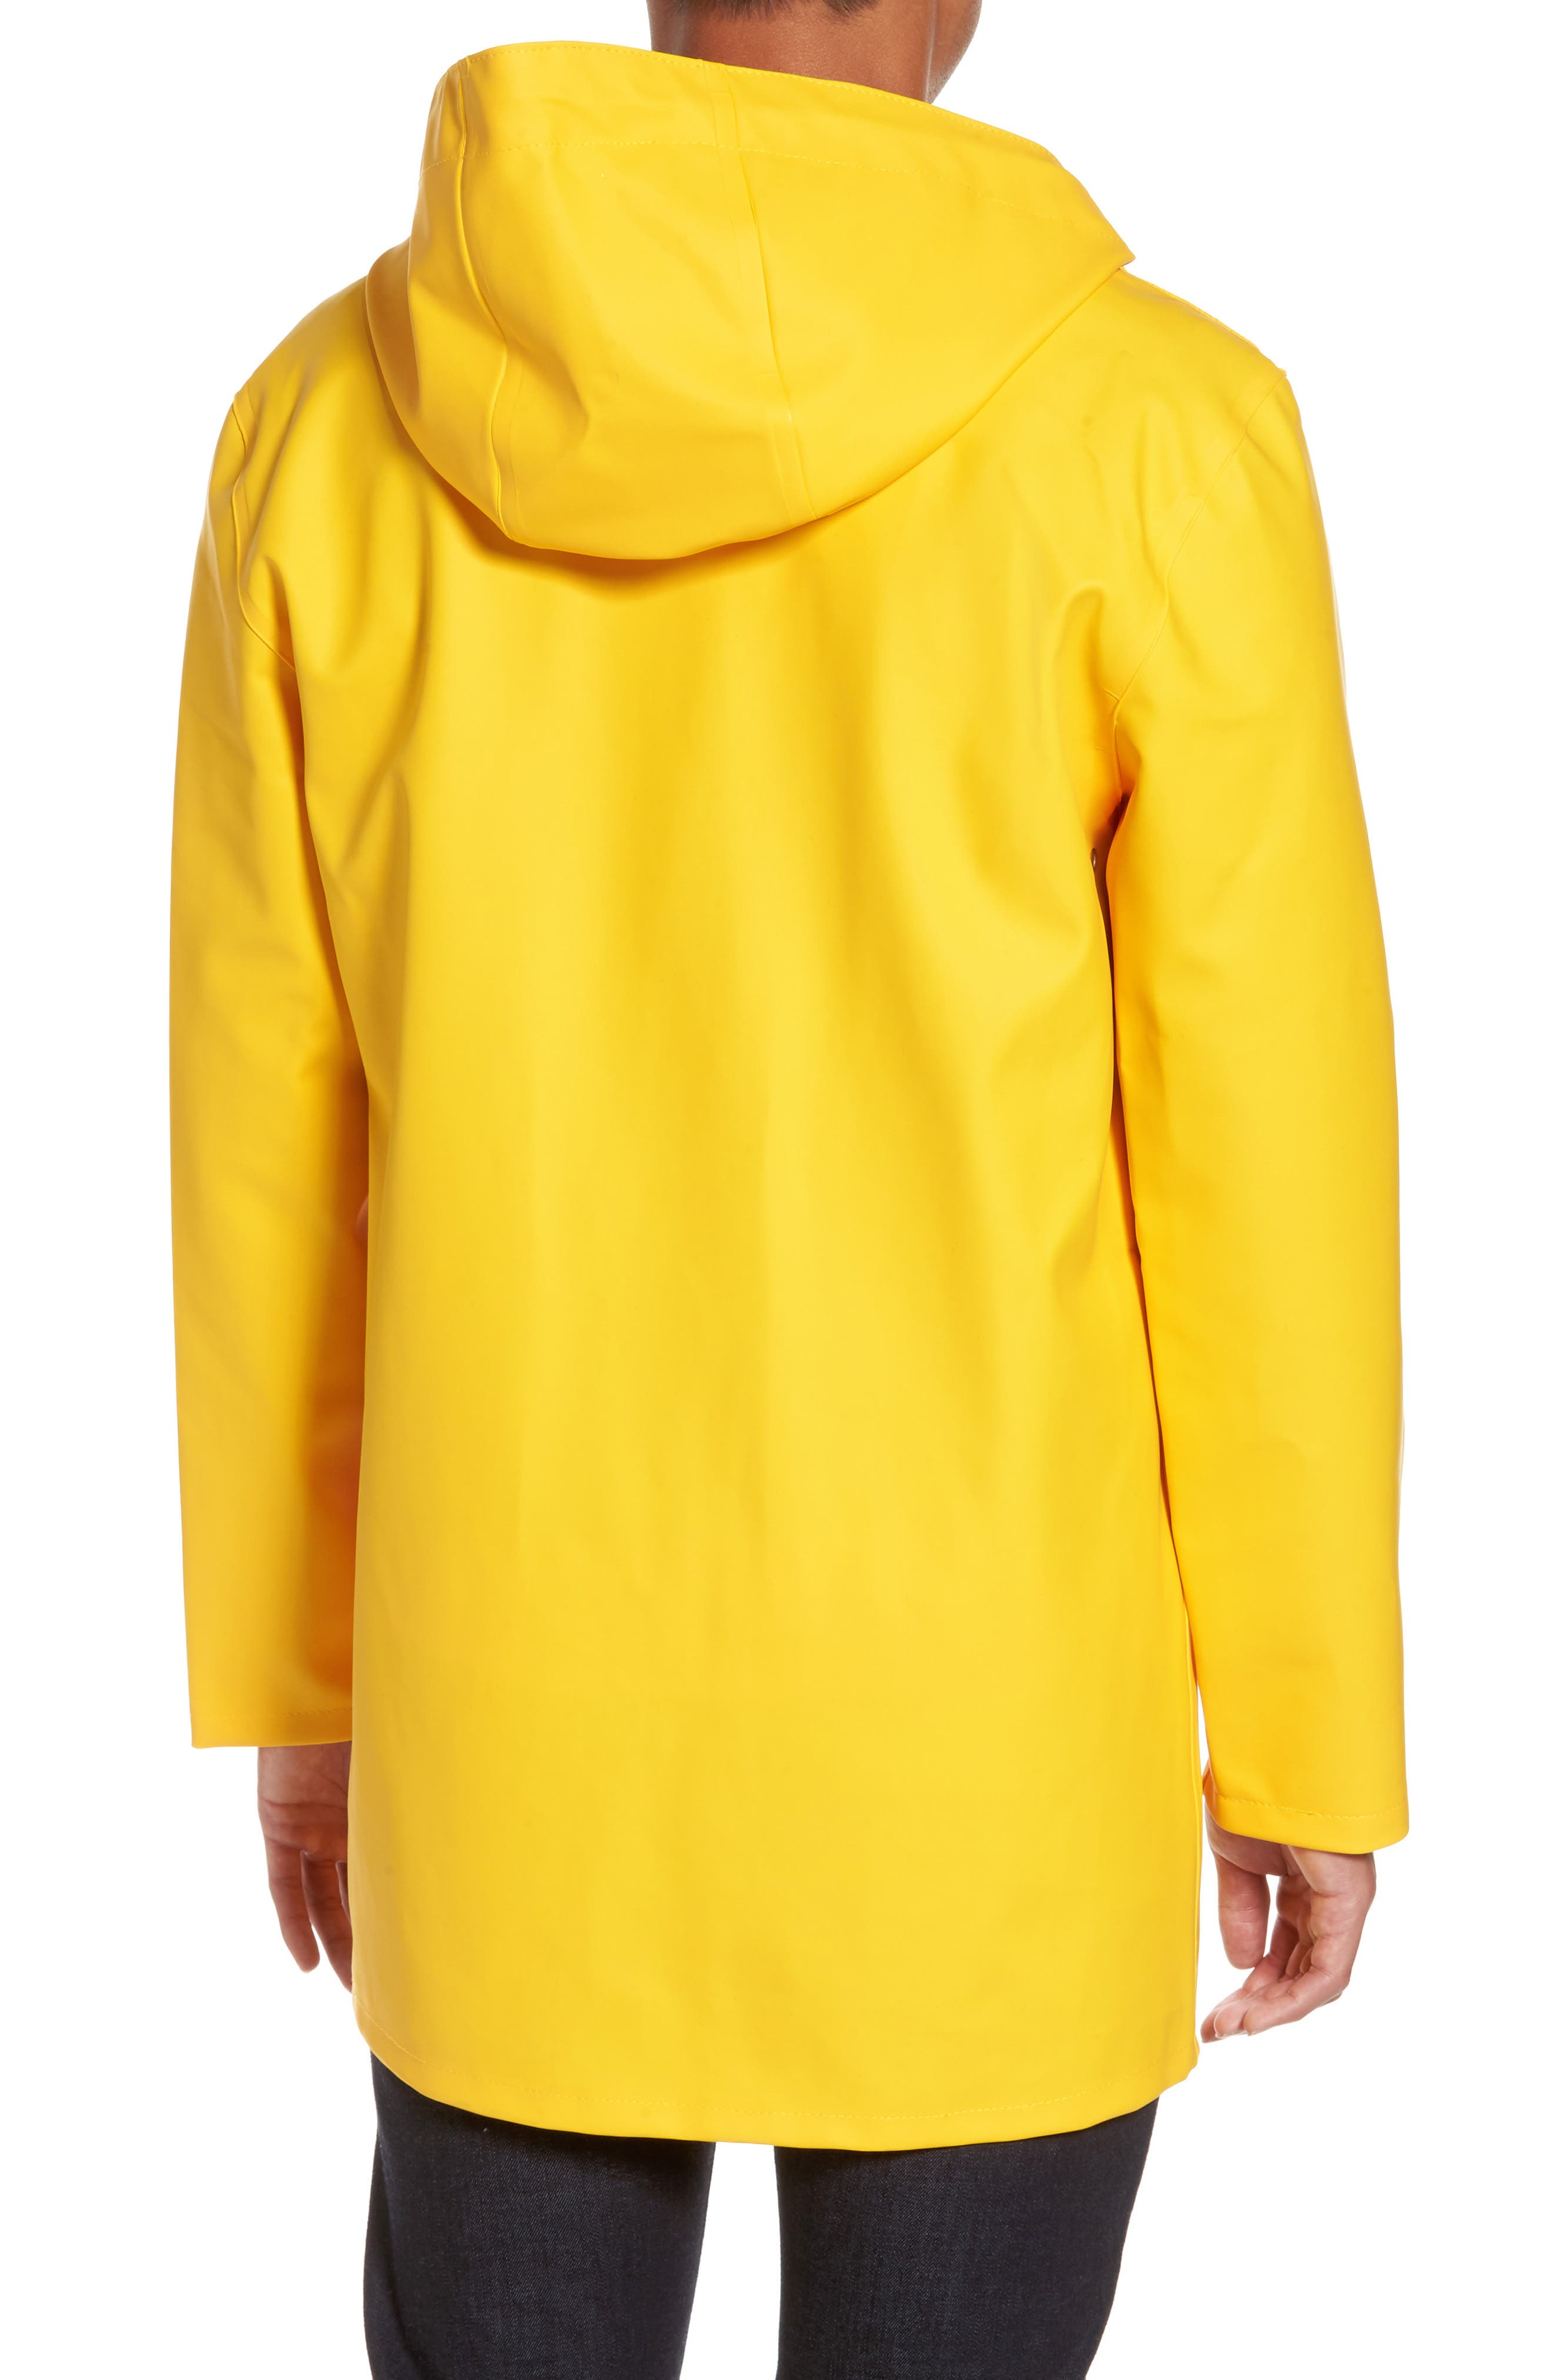 Stockholm Waterproof Hooded Raincoat,                             Alternate thumbnail 2, color,                             Yellow